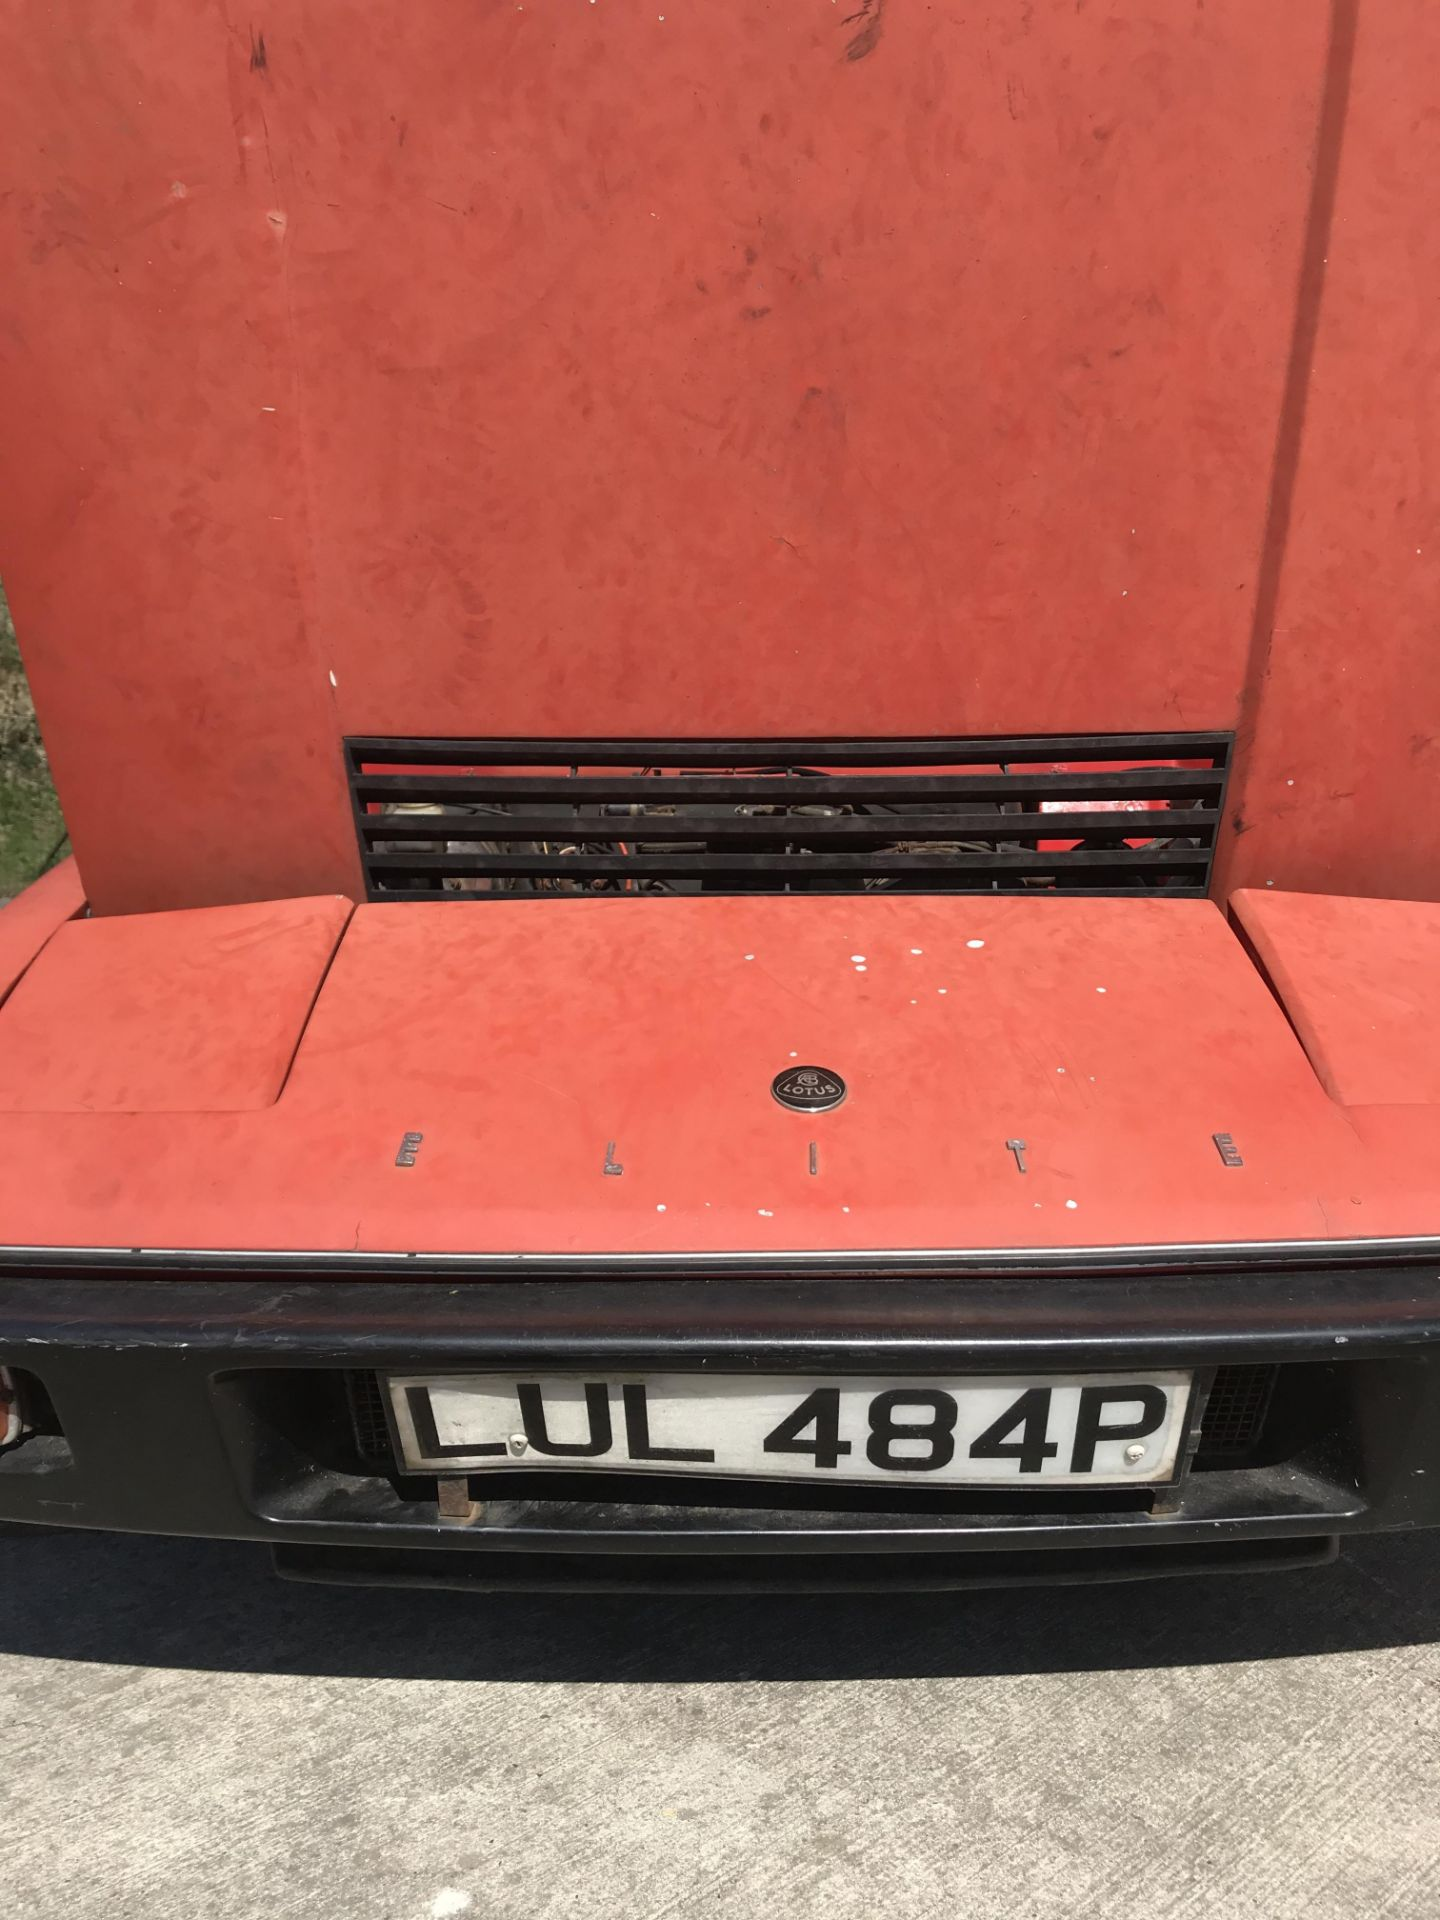 BARN FIND - IN NEED OF TOTAL RESTORATION LOTUS ELITE TWO DOOR SALOON (1973cc) - AUTOMATIC - petrol - Image 4 of 14